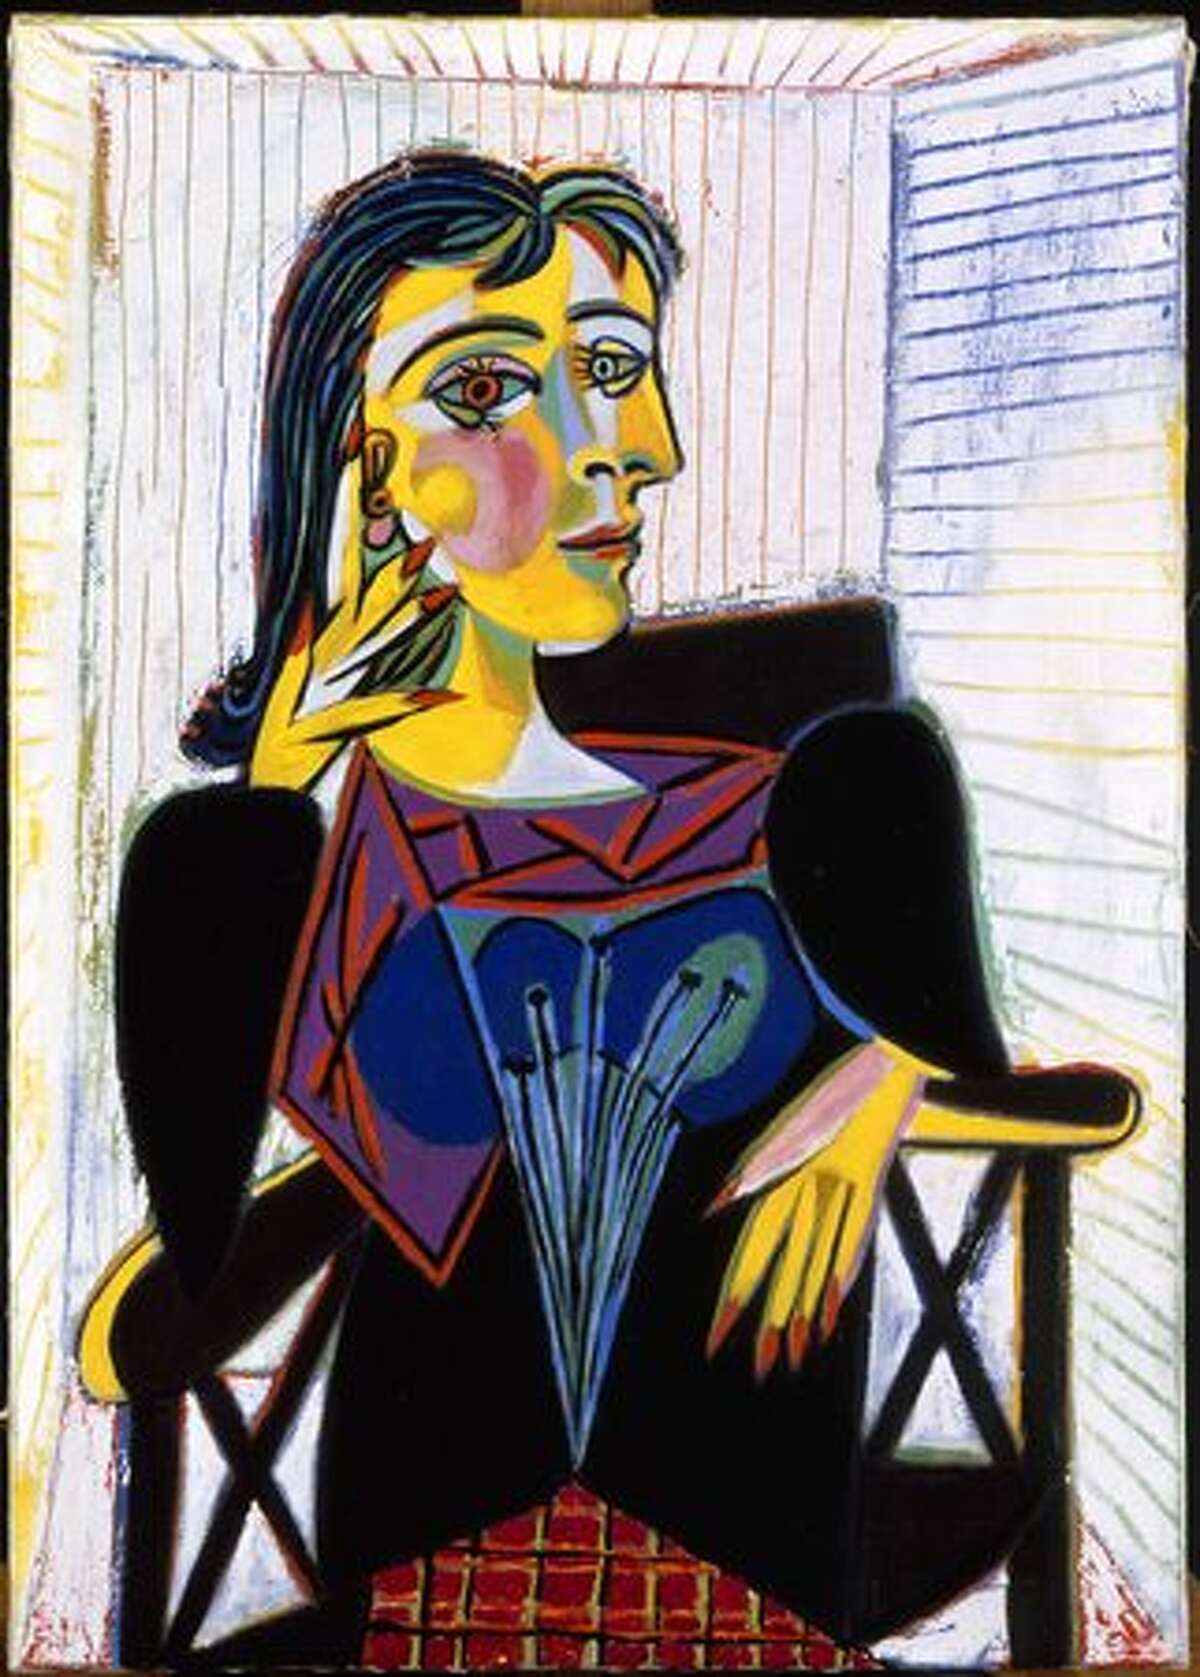 Portrait of Dora Maar, 1937. Oil on canvas, 92 x 65 cm.